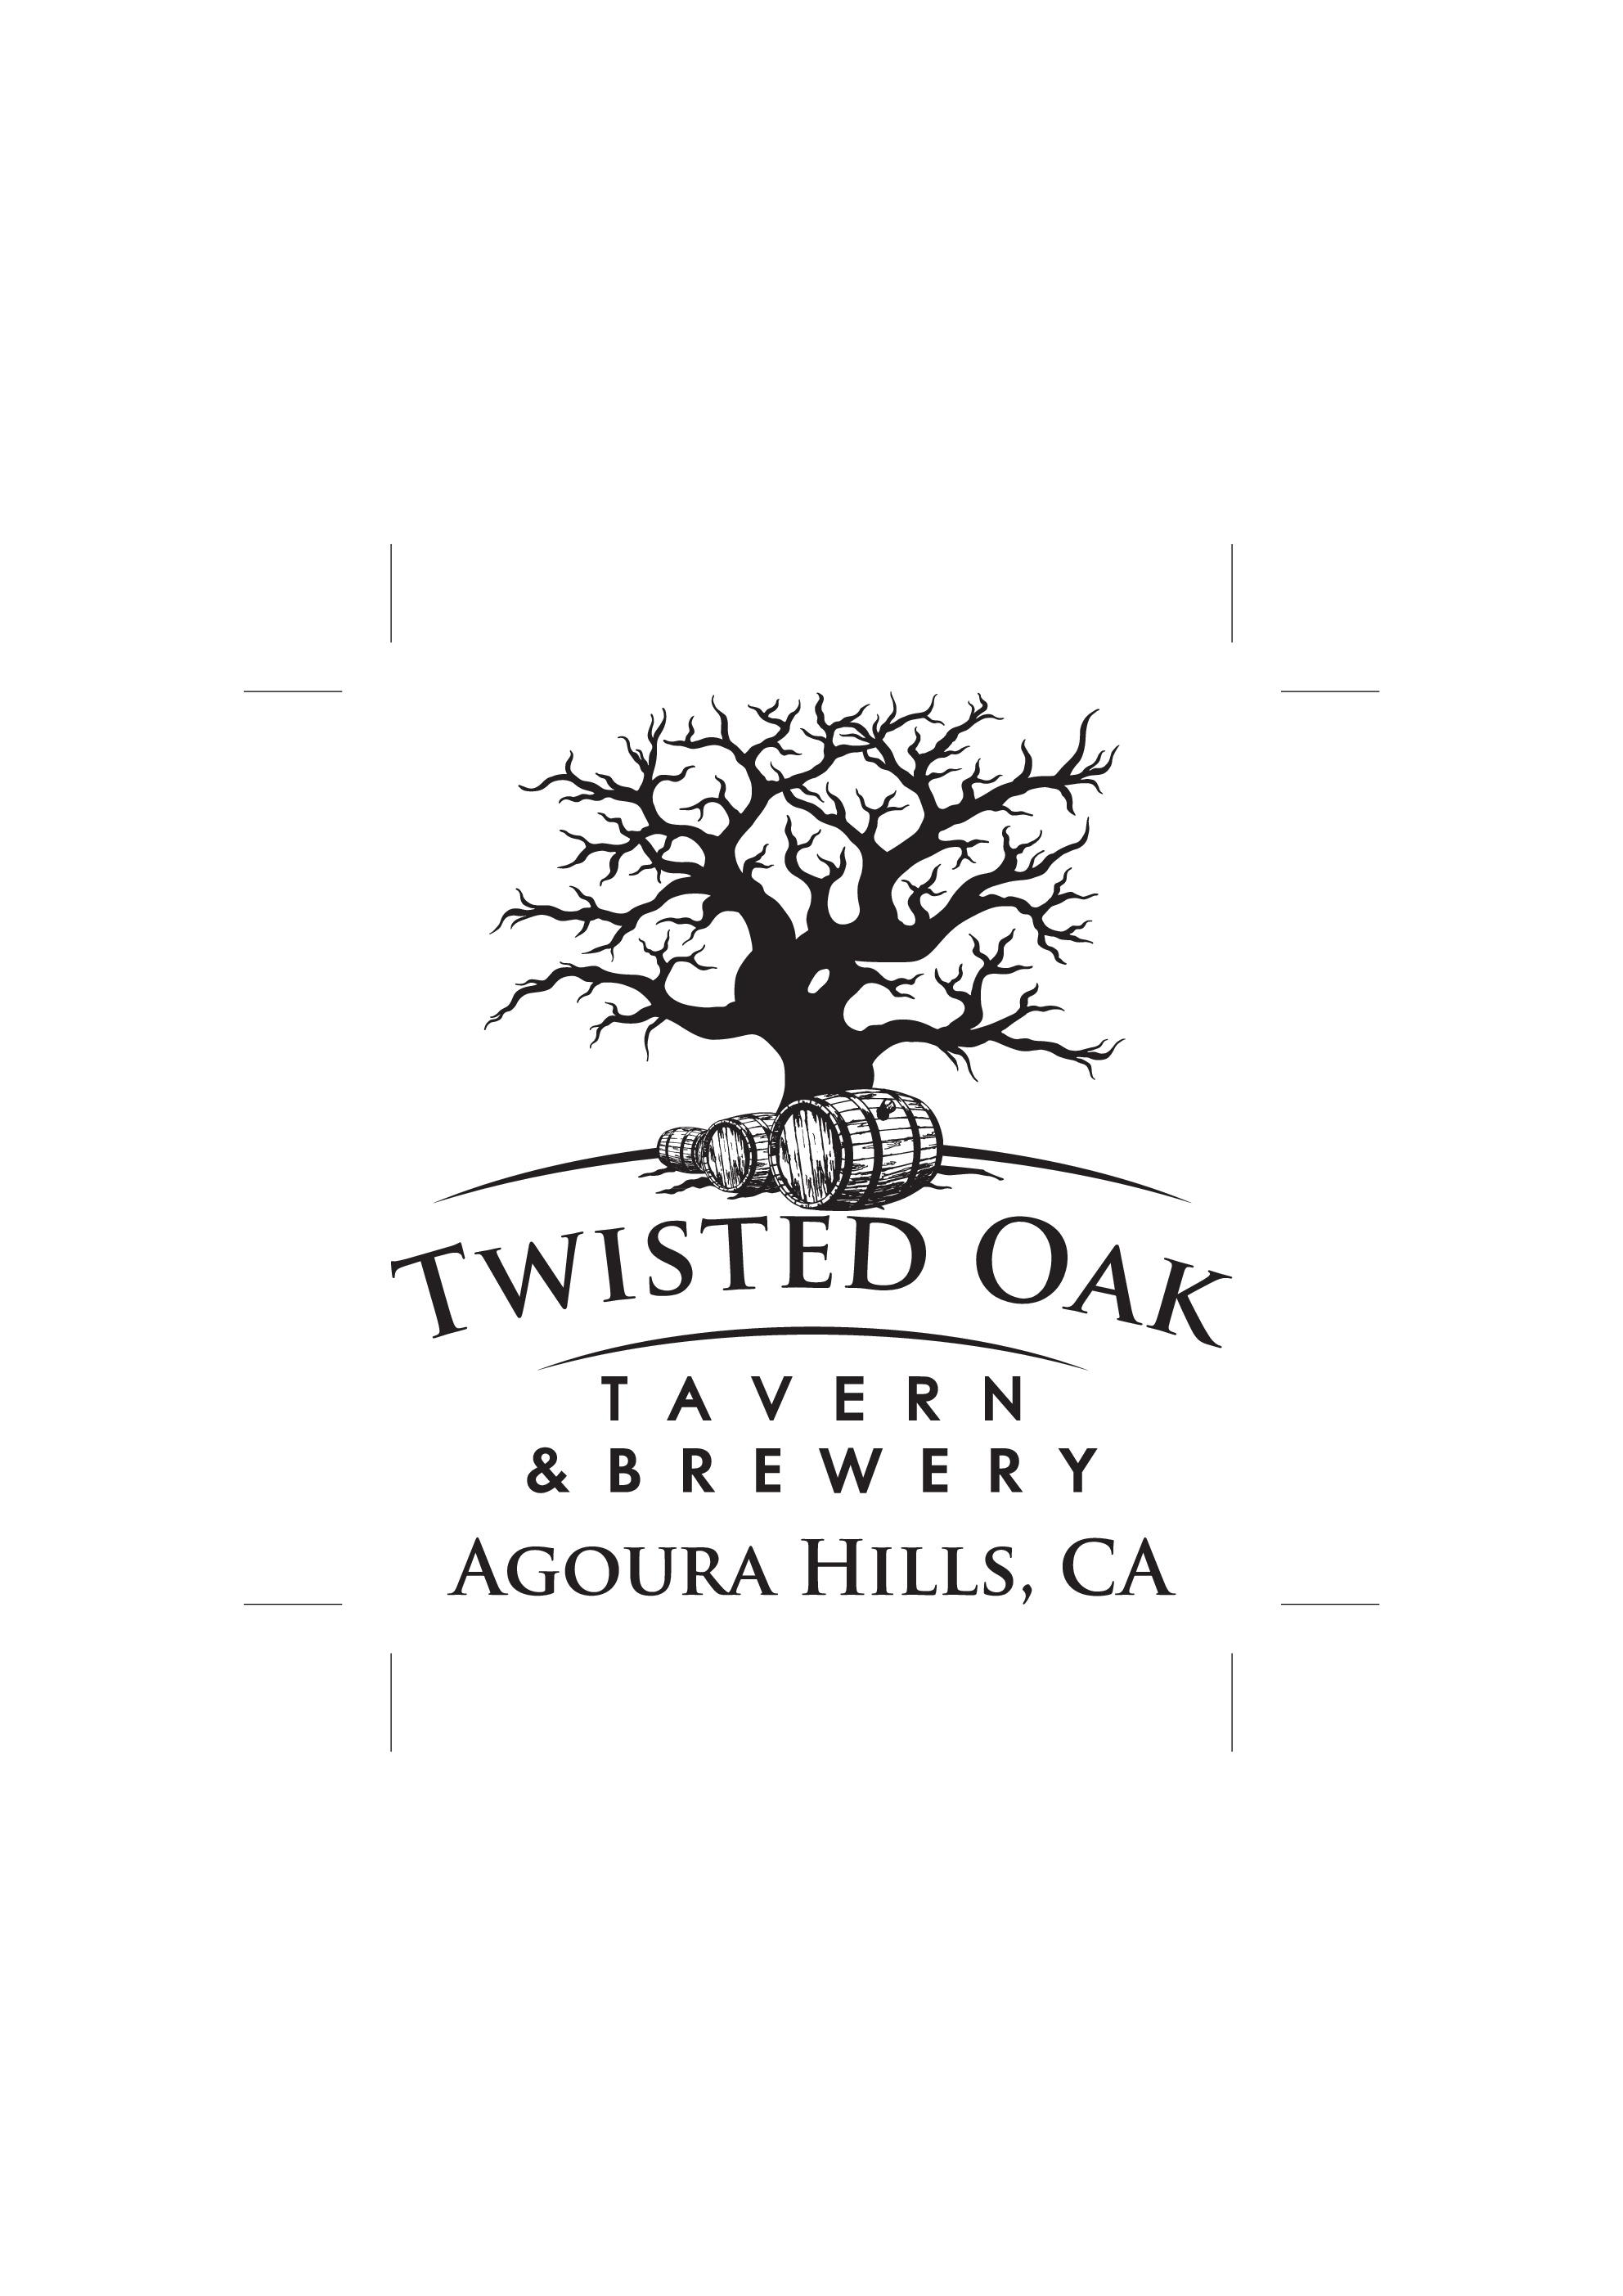 Twisted Oak Tavern and Brewery